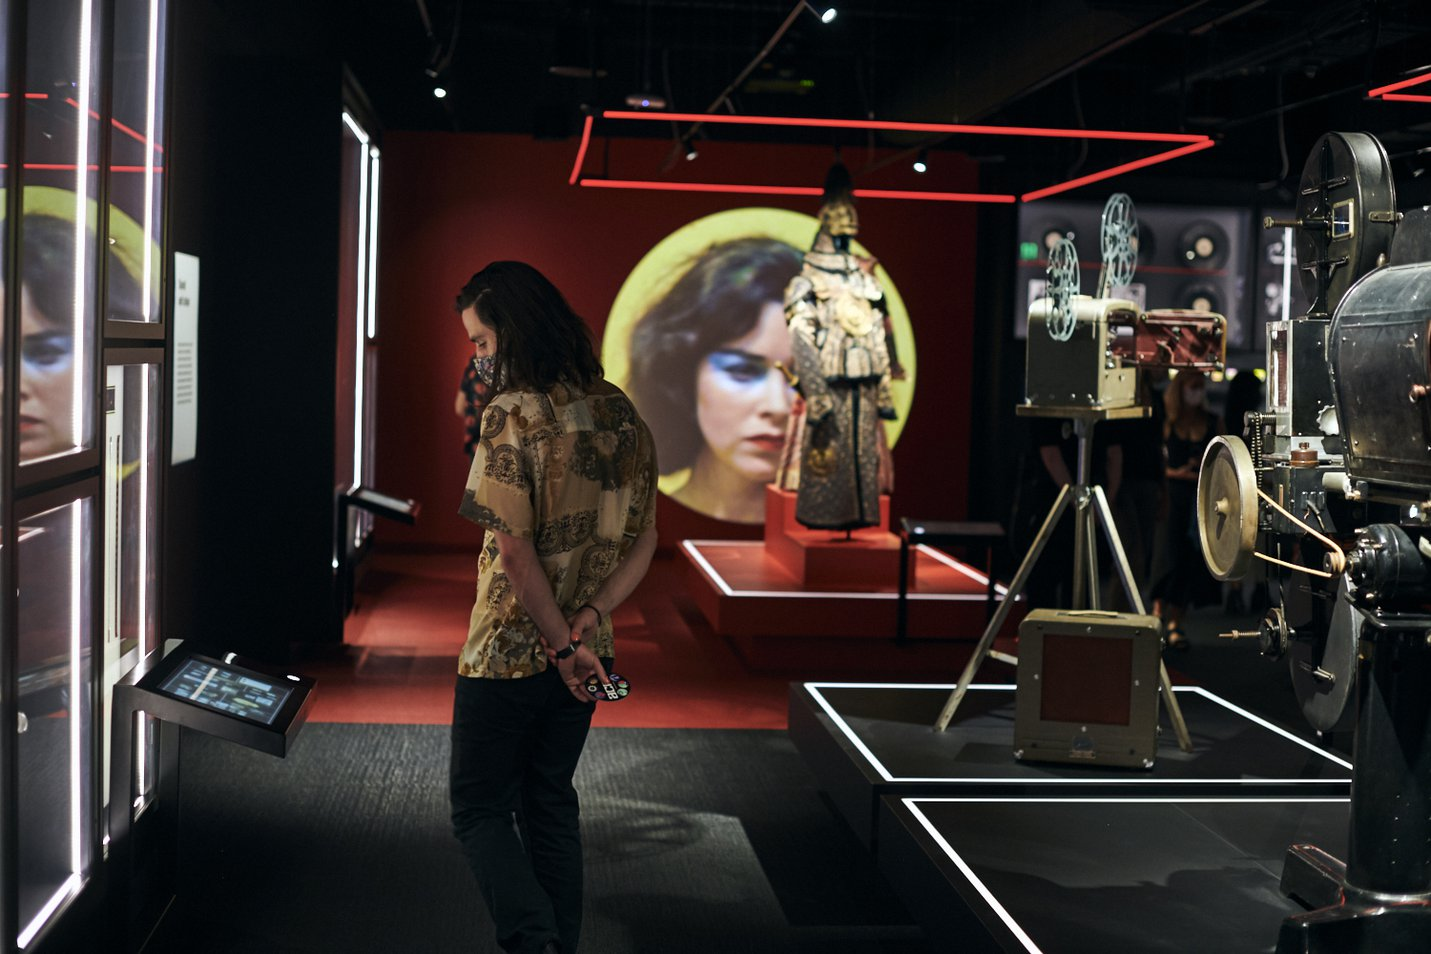 Supercut video visible as circular projection within The Story of the Moving Image - photo by Eugene Hyland